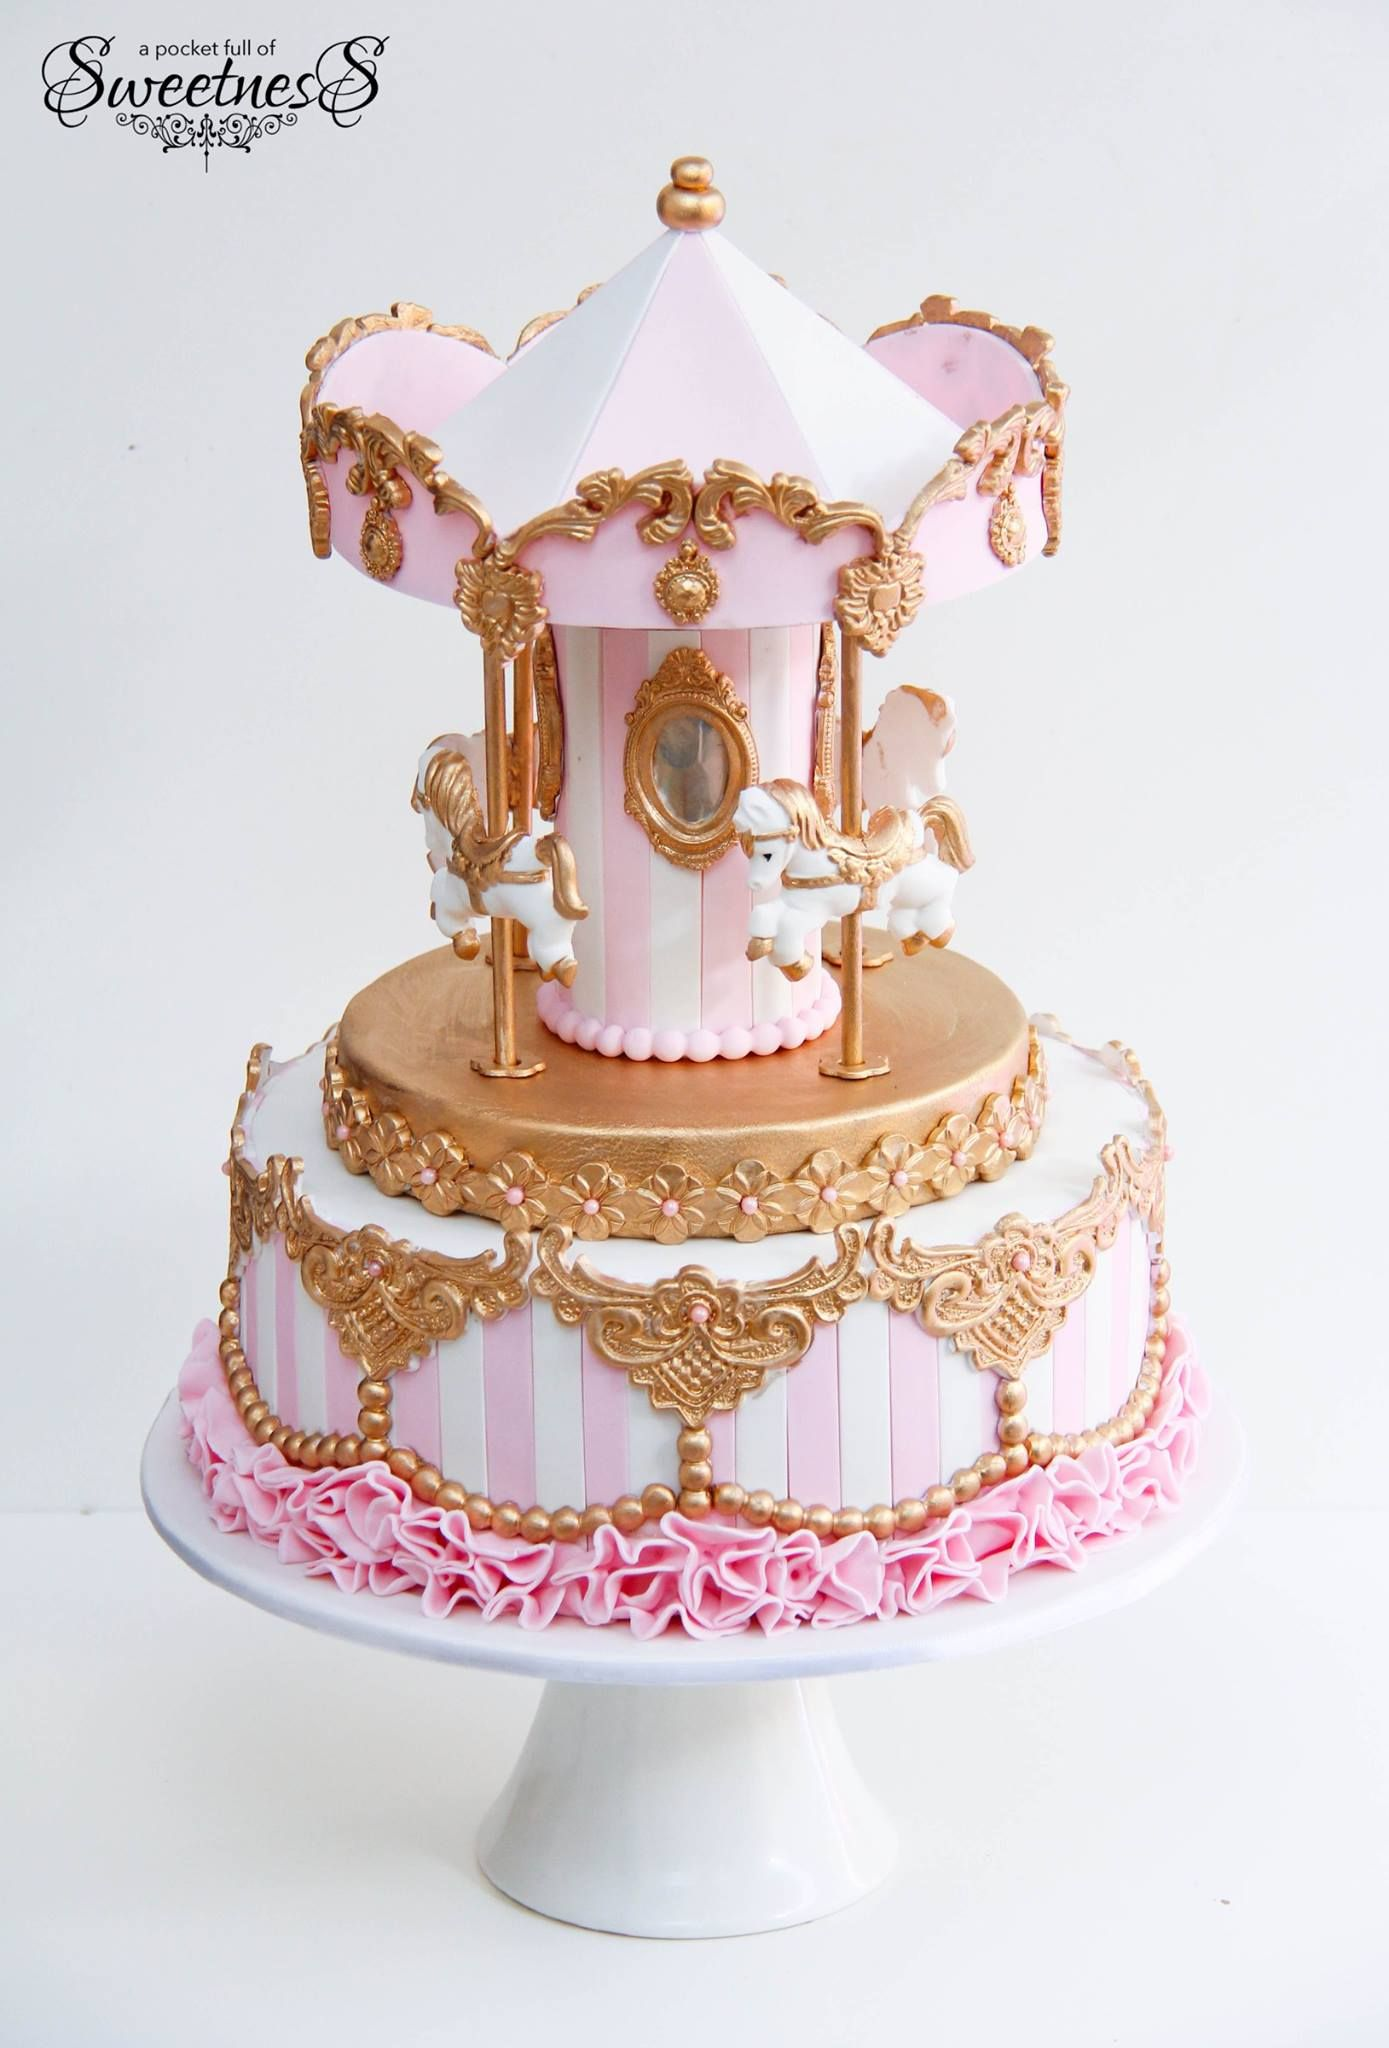 A pocket full of sweetness with images carousel cake